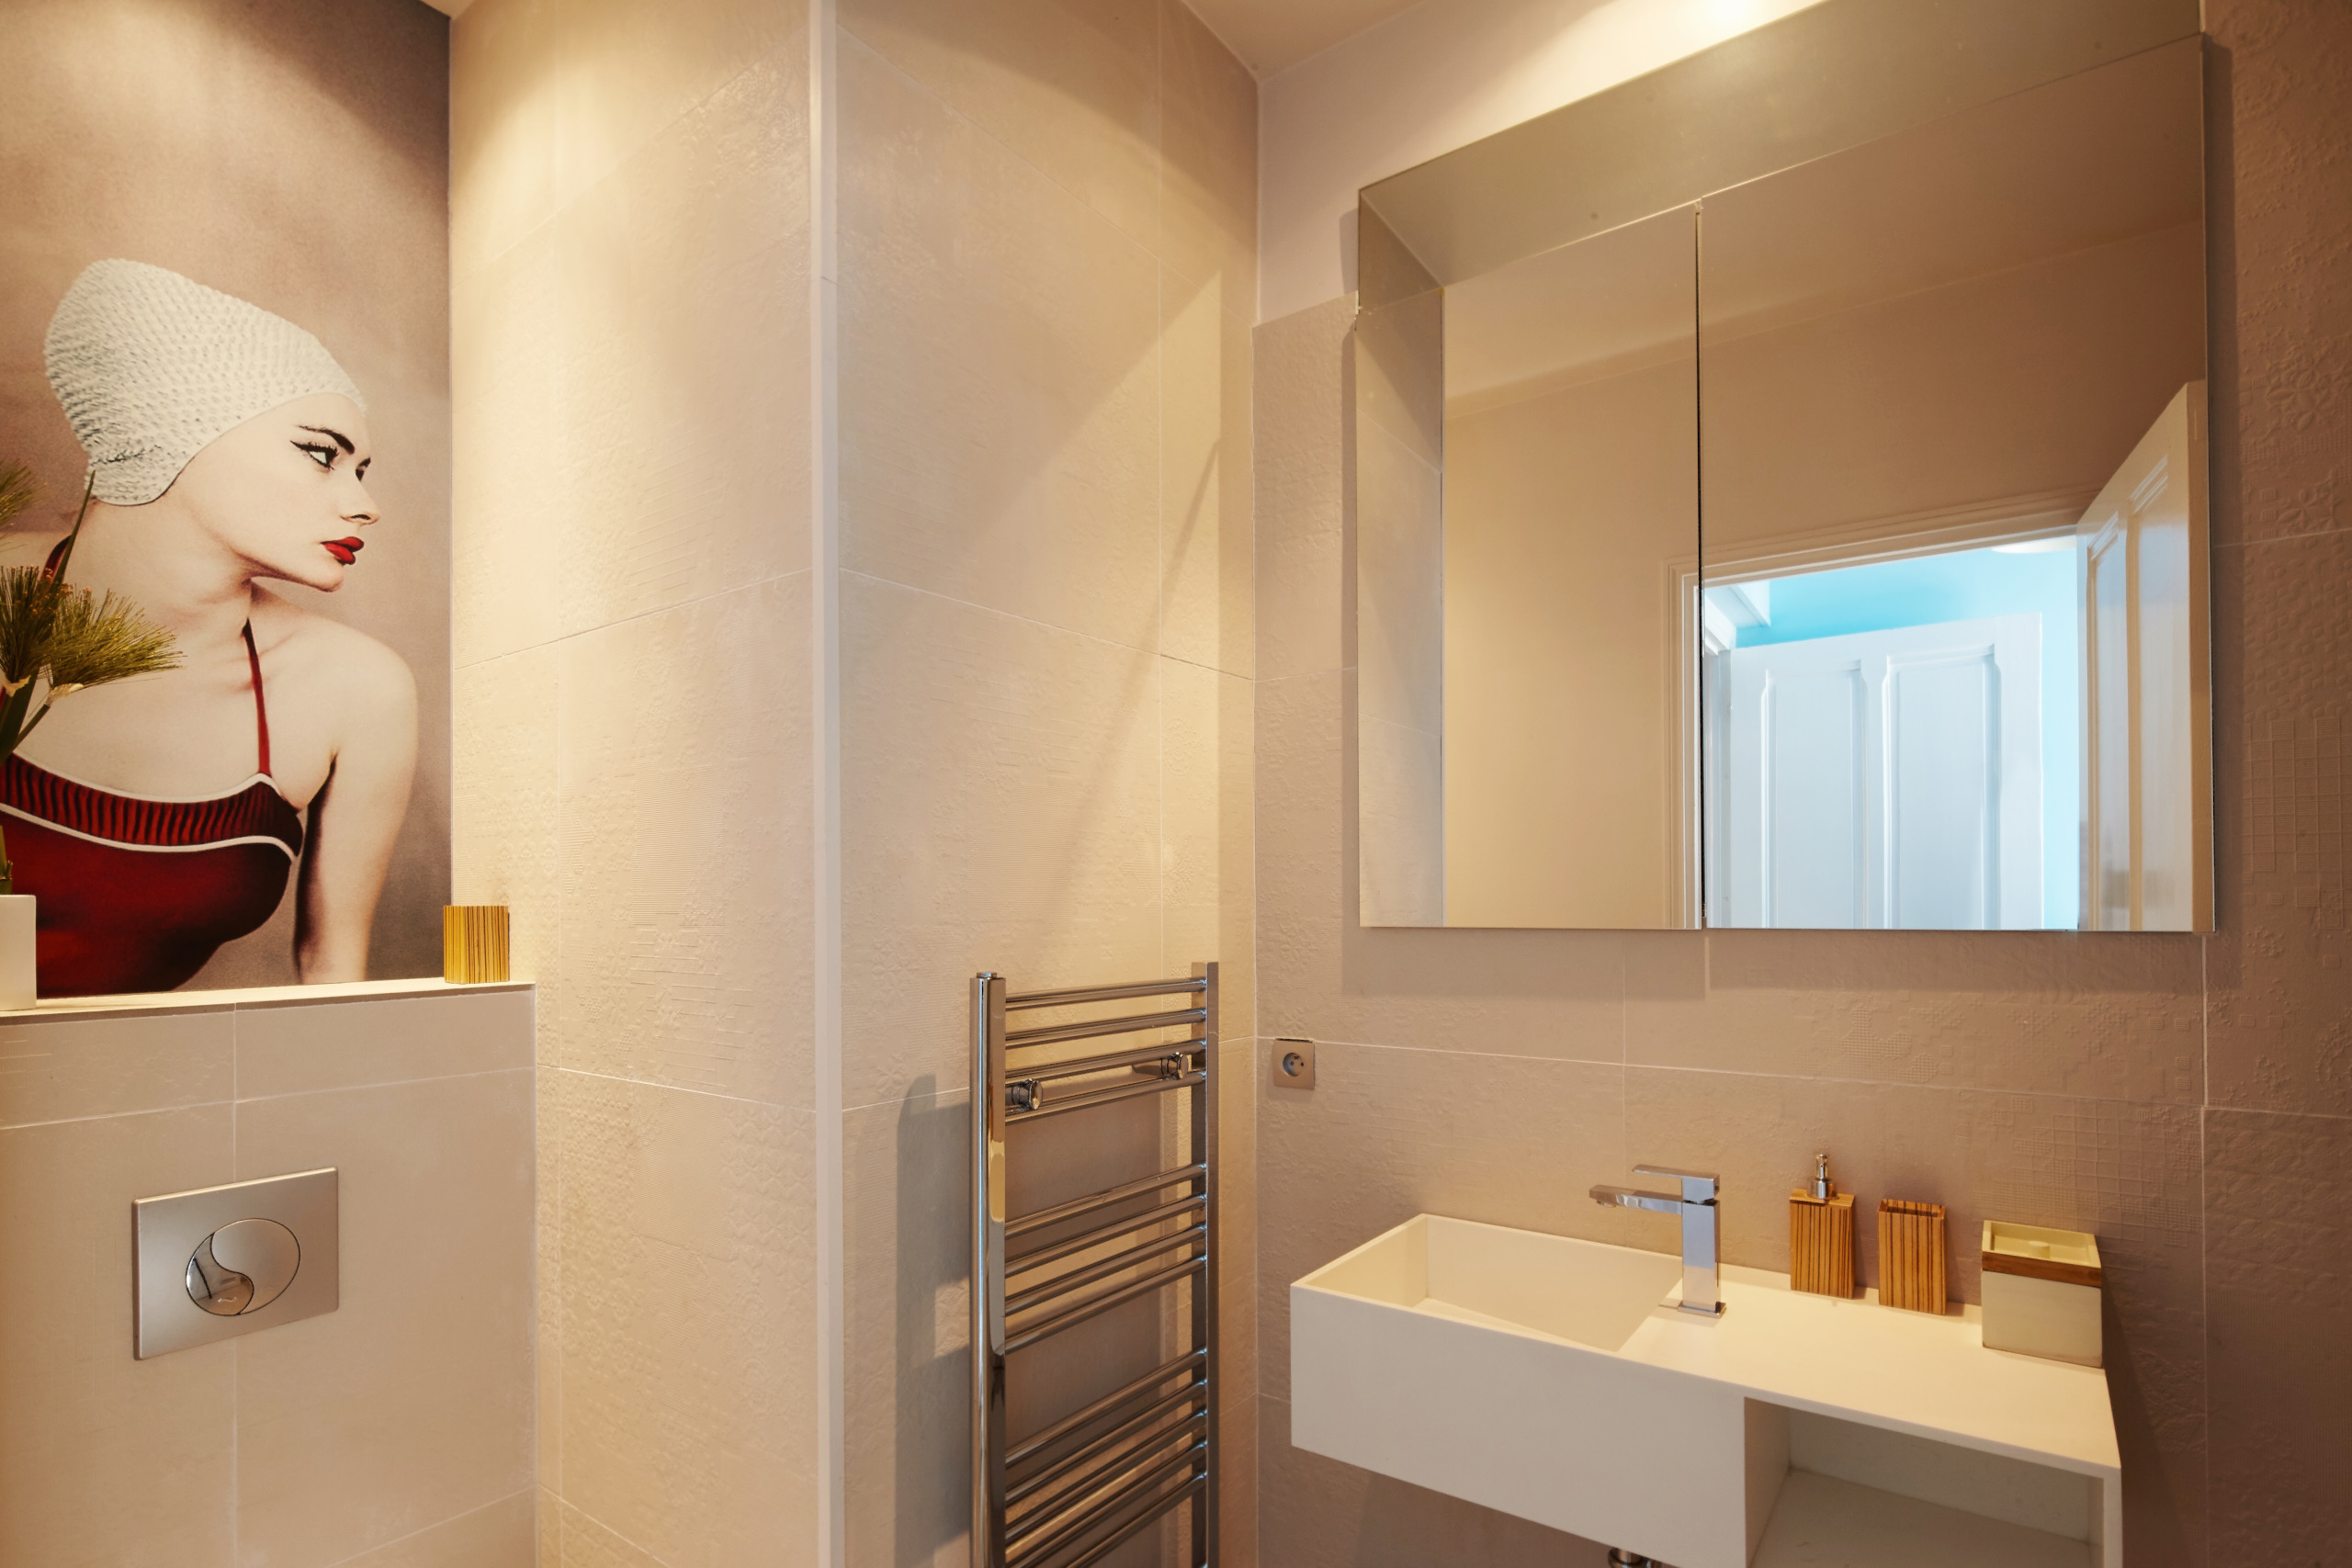 boutiqueappartement_MG_0476